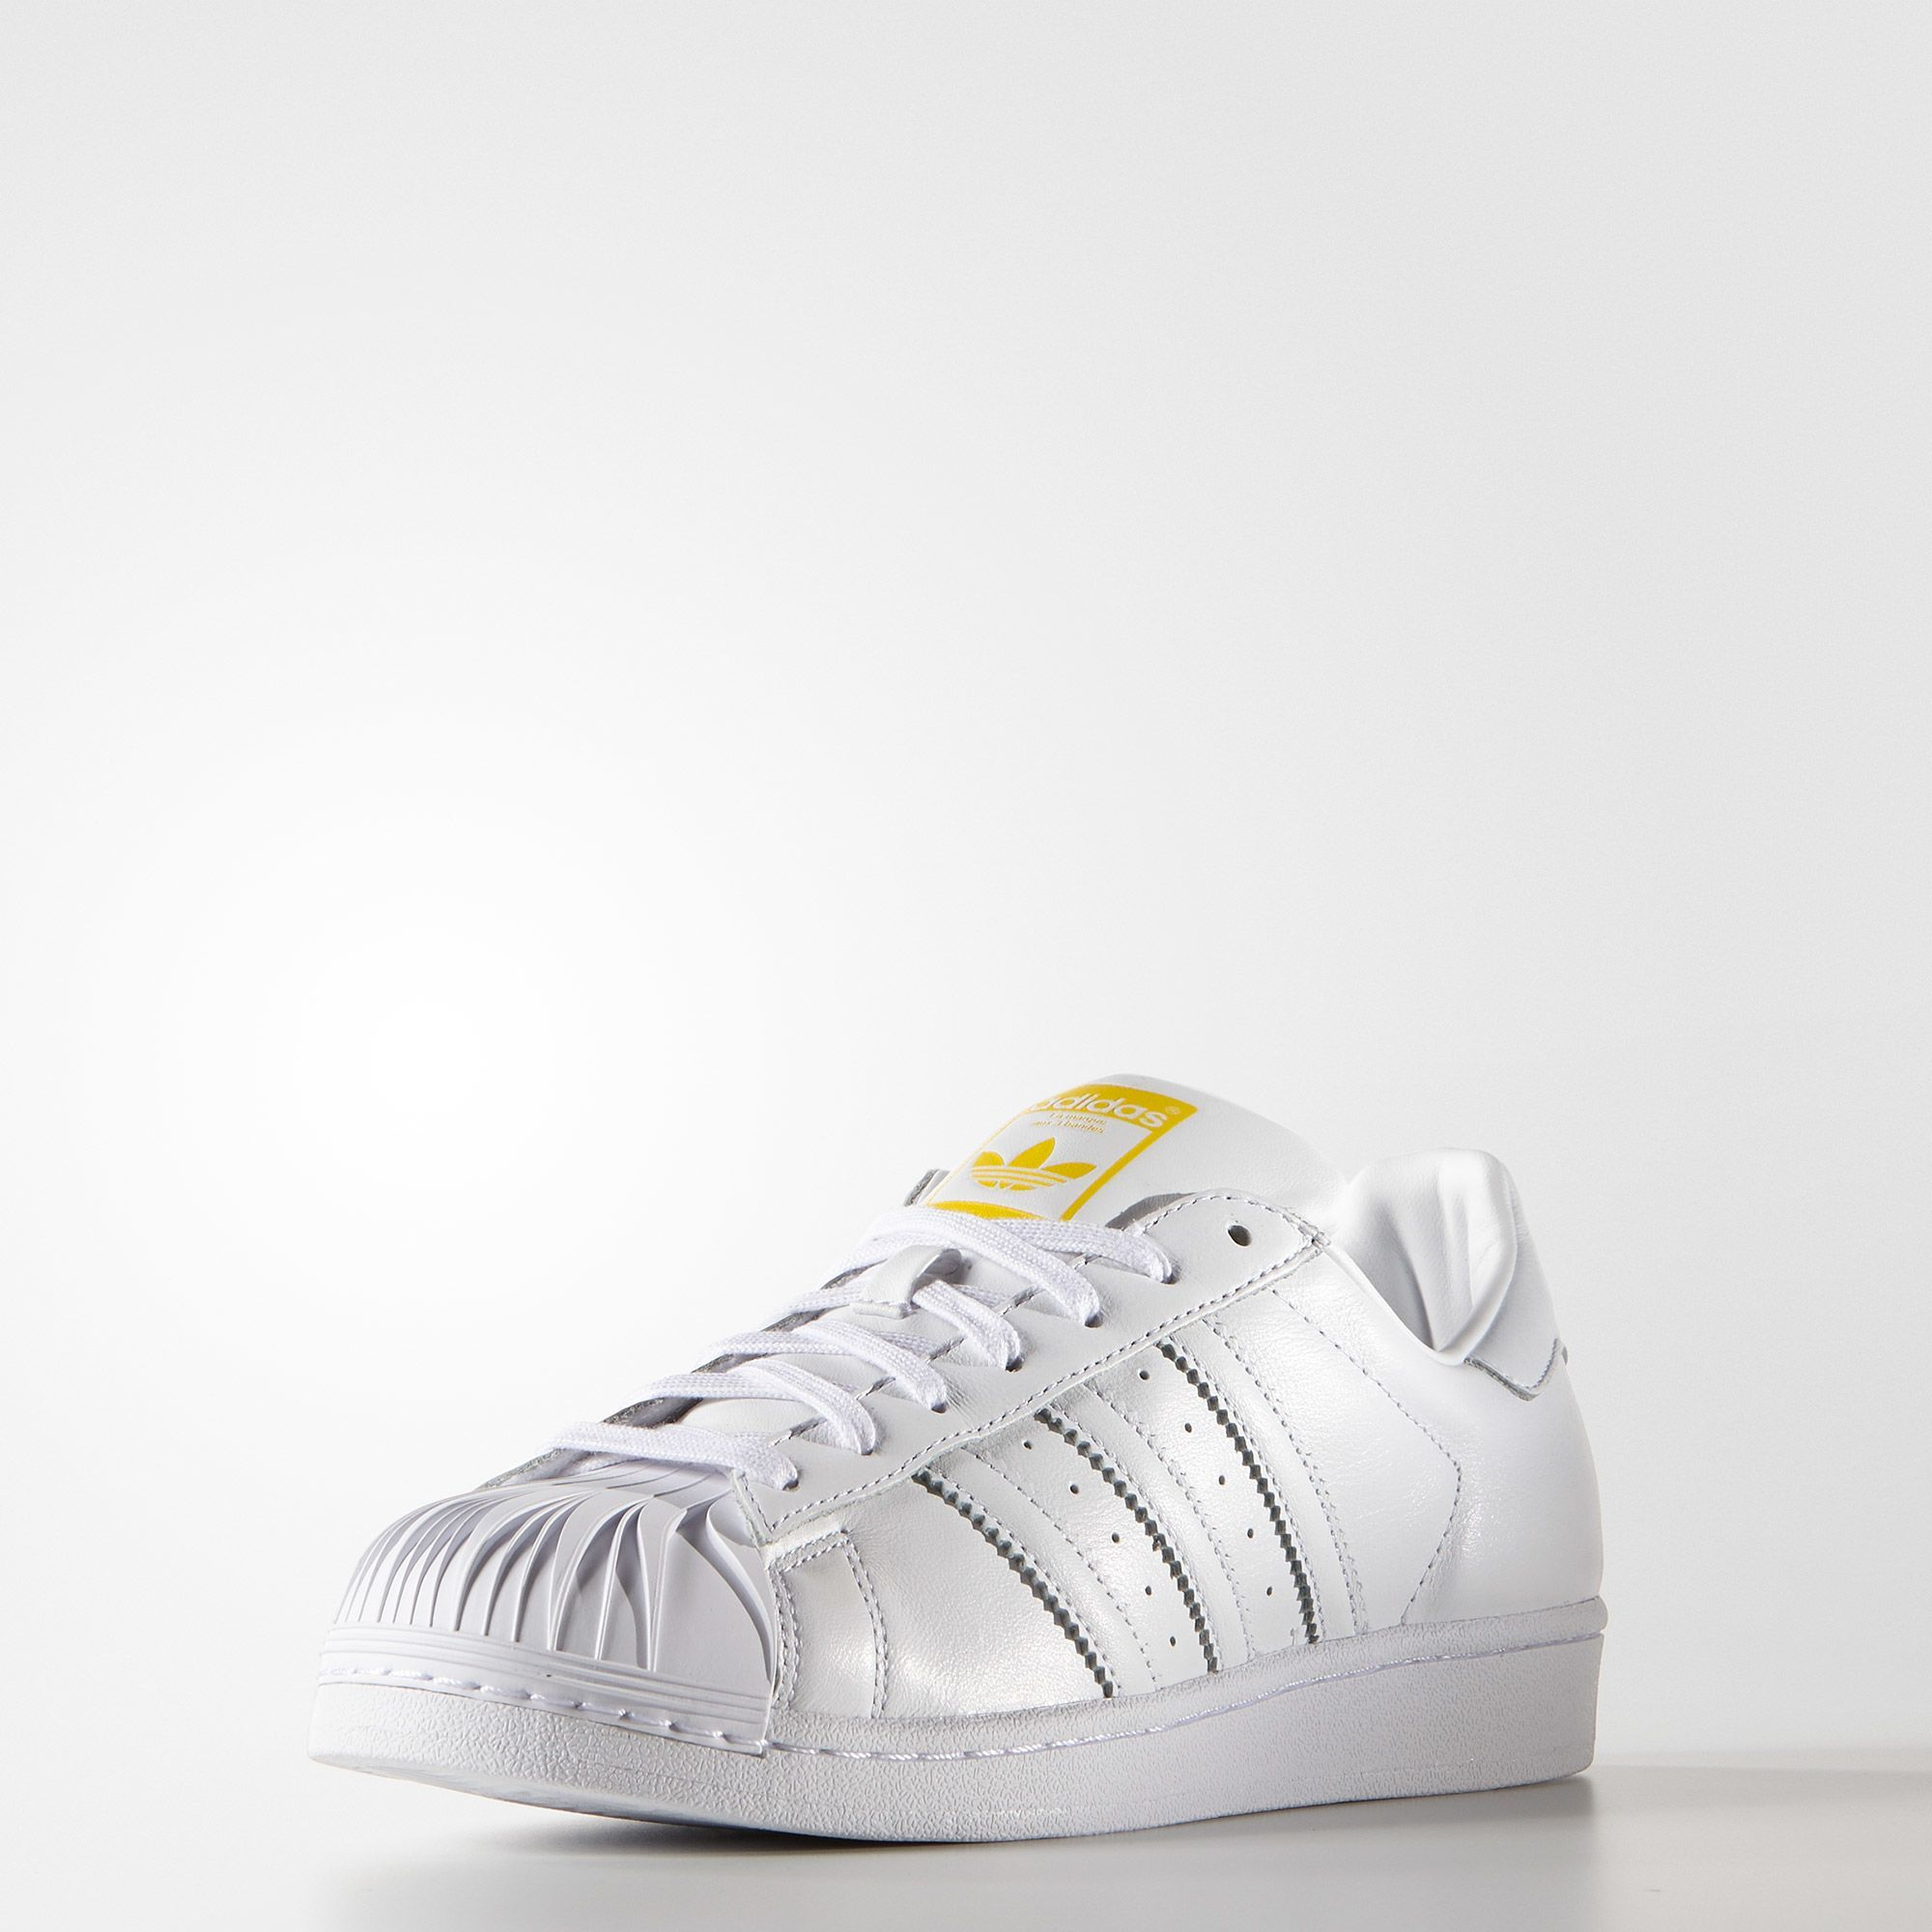 Newest Adidas Originals Superstar Pharrell Supershell M White Mens Trainers Outlet UK0119